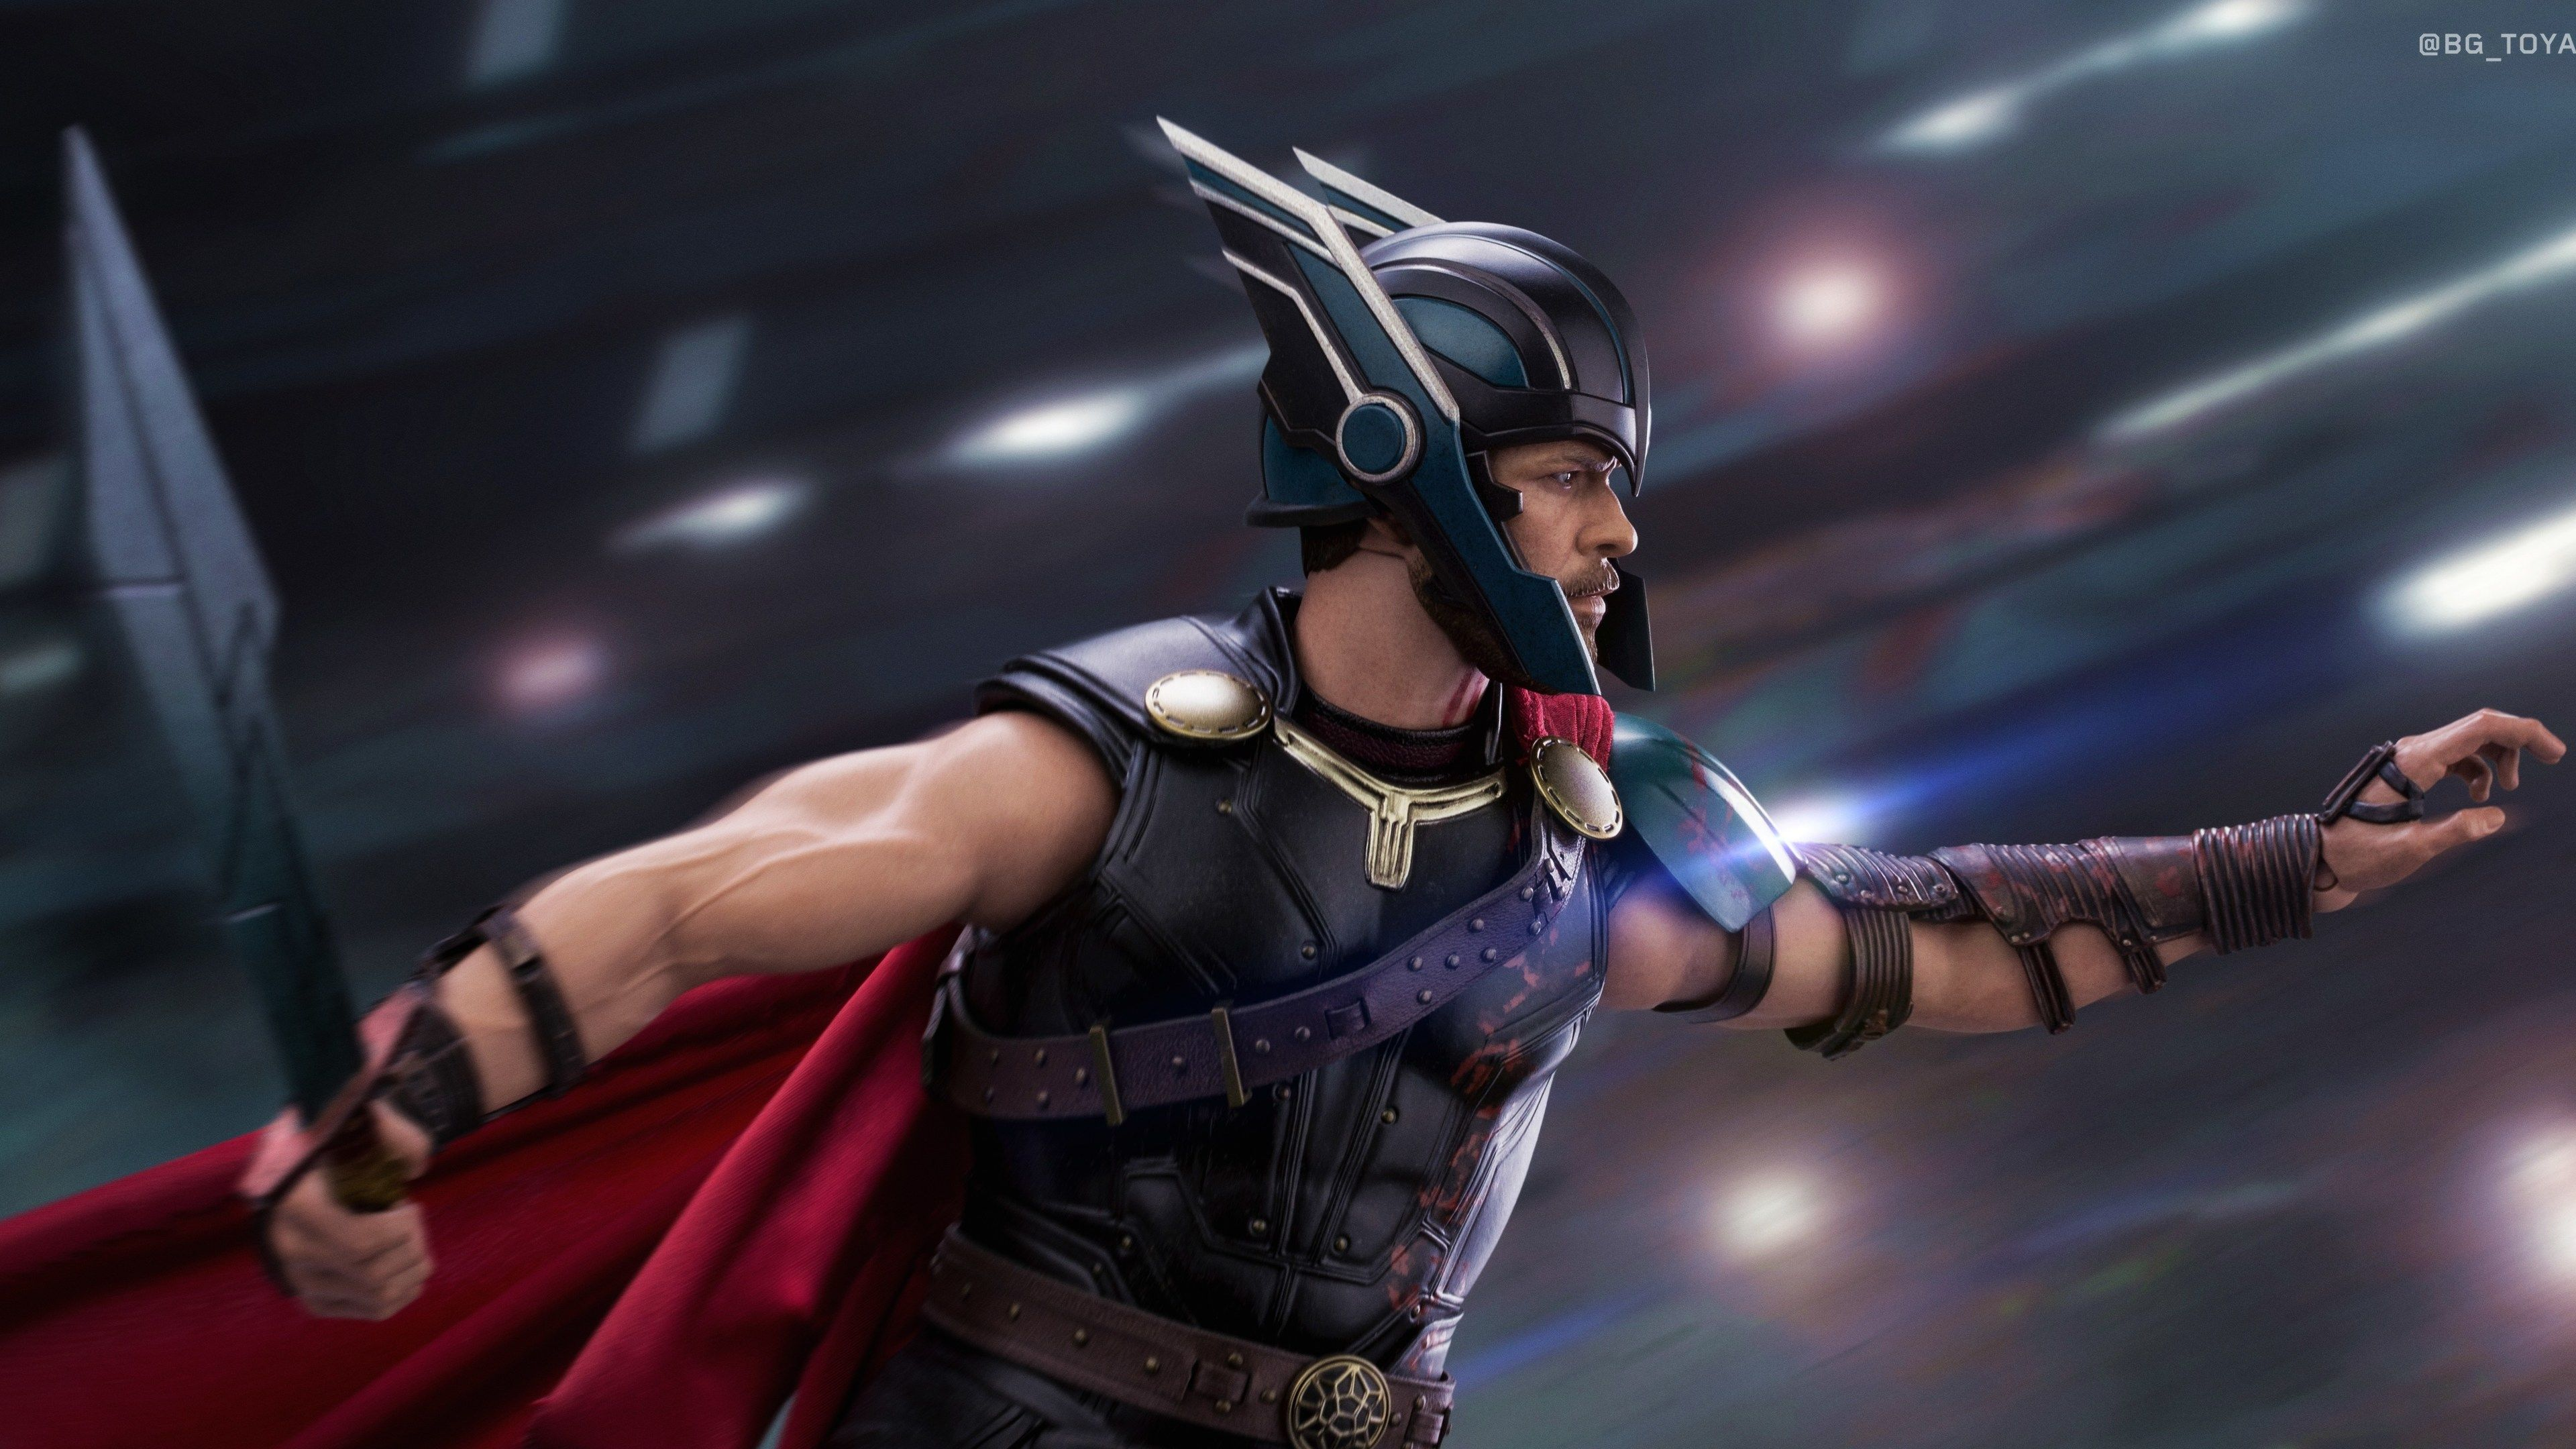 Thor Ragnarok 4k Art Thor Wallpapers Thor Ragnarok Wallpapers Marvel Wallpapers Hd Wallpapers 5k Wallpa Thor Wallpaper Marvel Wallpaper Marvel Wallpaper Hd